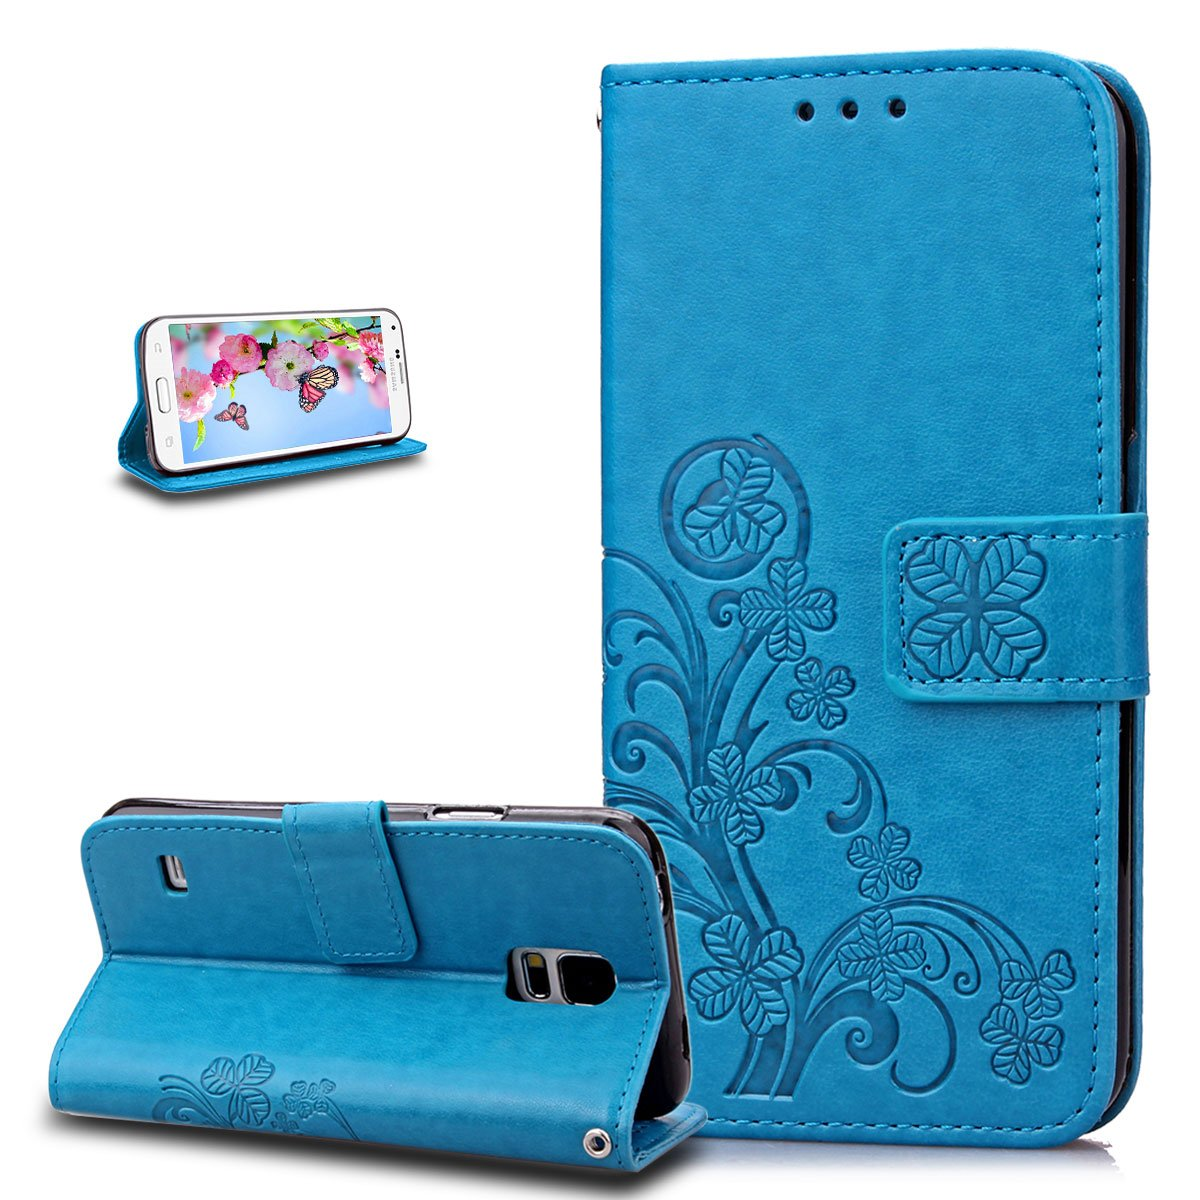 Galaxy S5 Mini Case, Wallet Case for Galaxy S5 Mini, ikasus Embossing Clover Flower PU Leather Fold Wallet Pouch PU Leather Wallet Flip Stand Credit Card Holders Case Cover for Galaxy S5 Mini, Blue